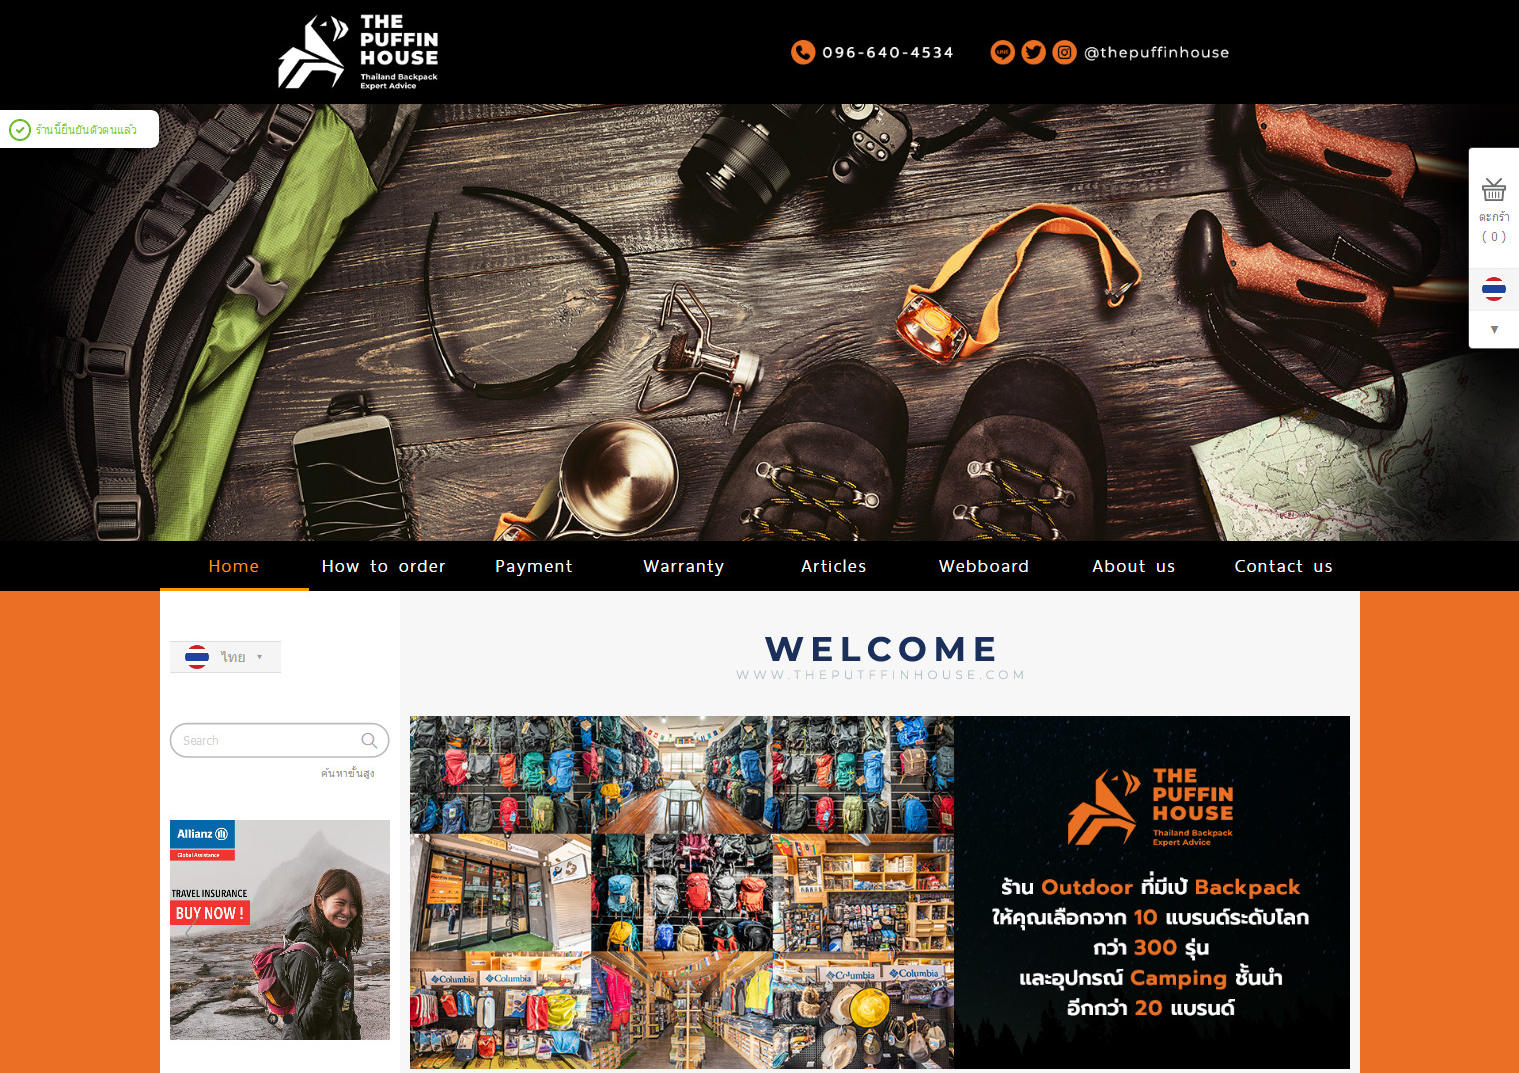 The Puffin House - Website